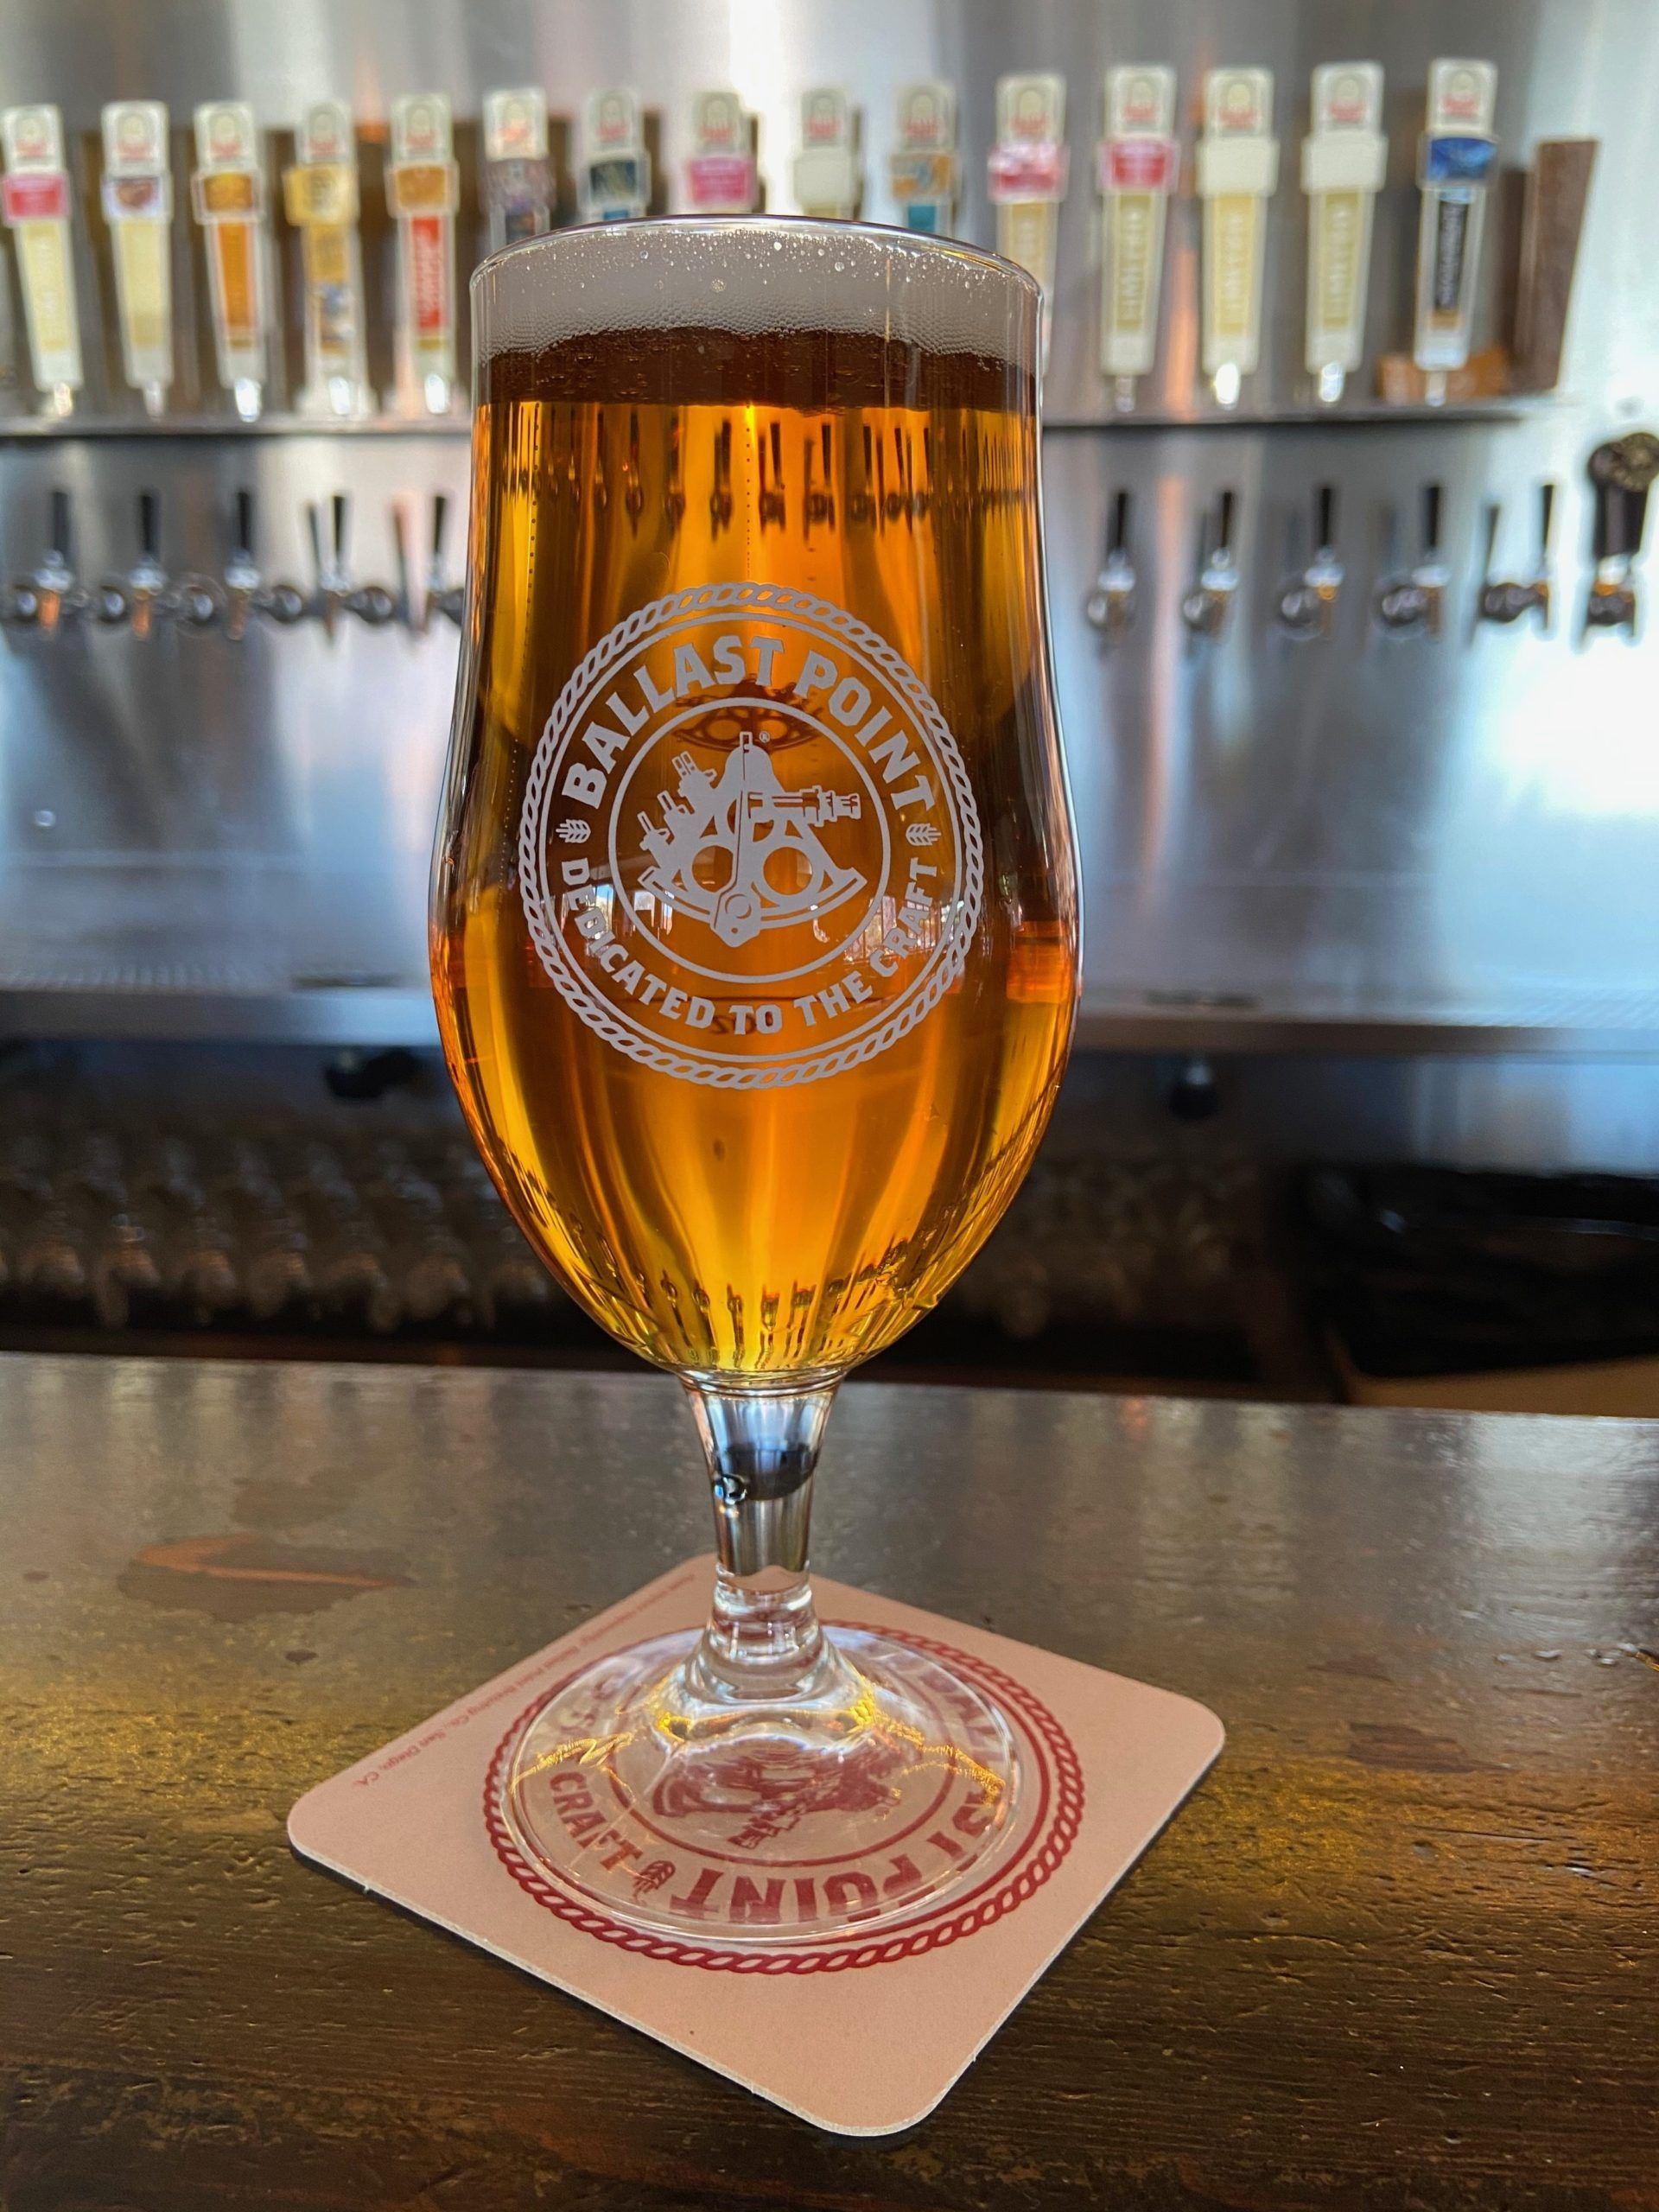 San Diego International collaborates to brew new beer from